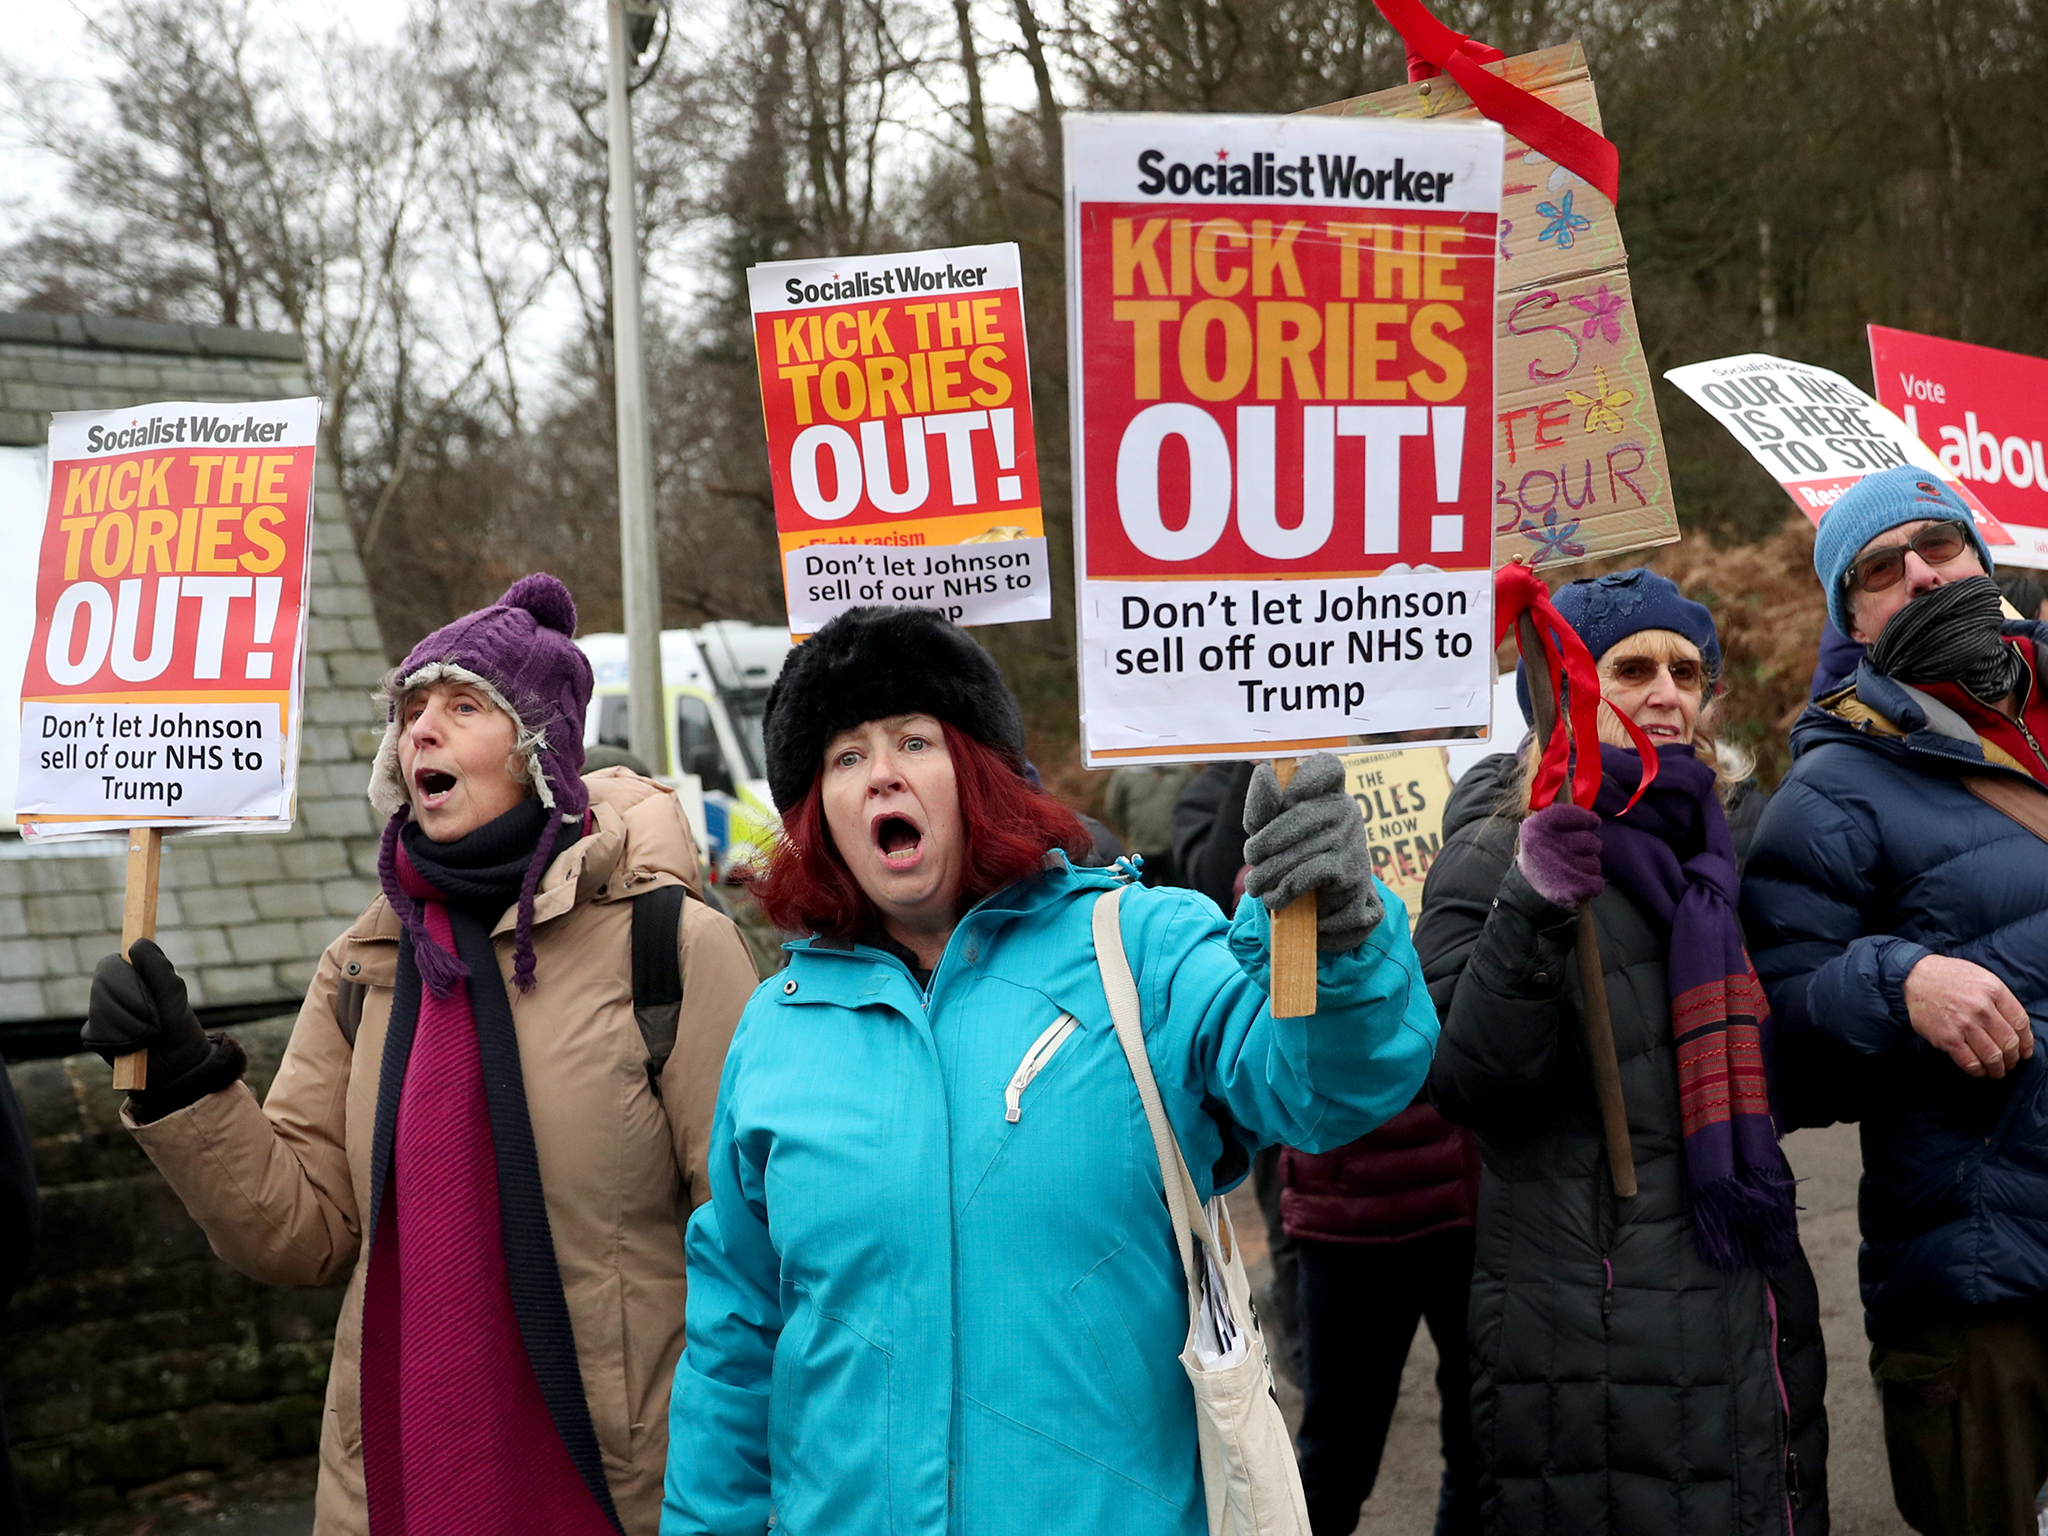 Protesters gather outside John Smedley Mill in Matlock ahead of the prime minister's arrival during the 2019 election campaign